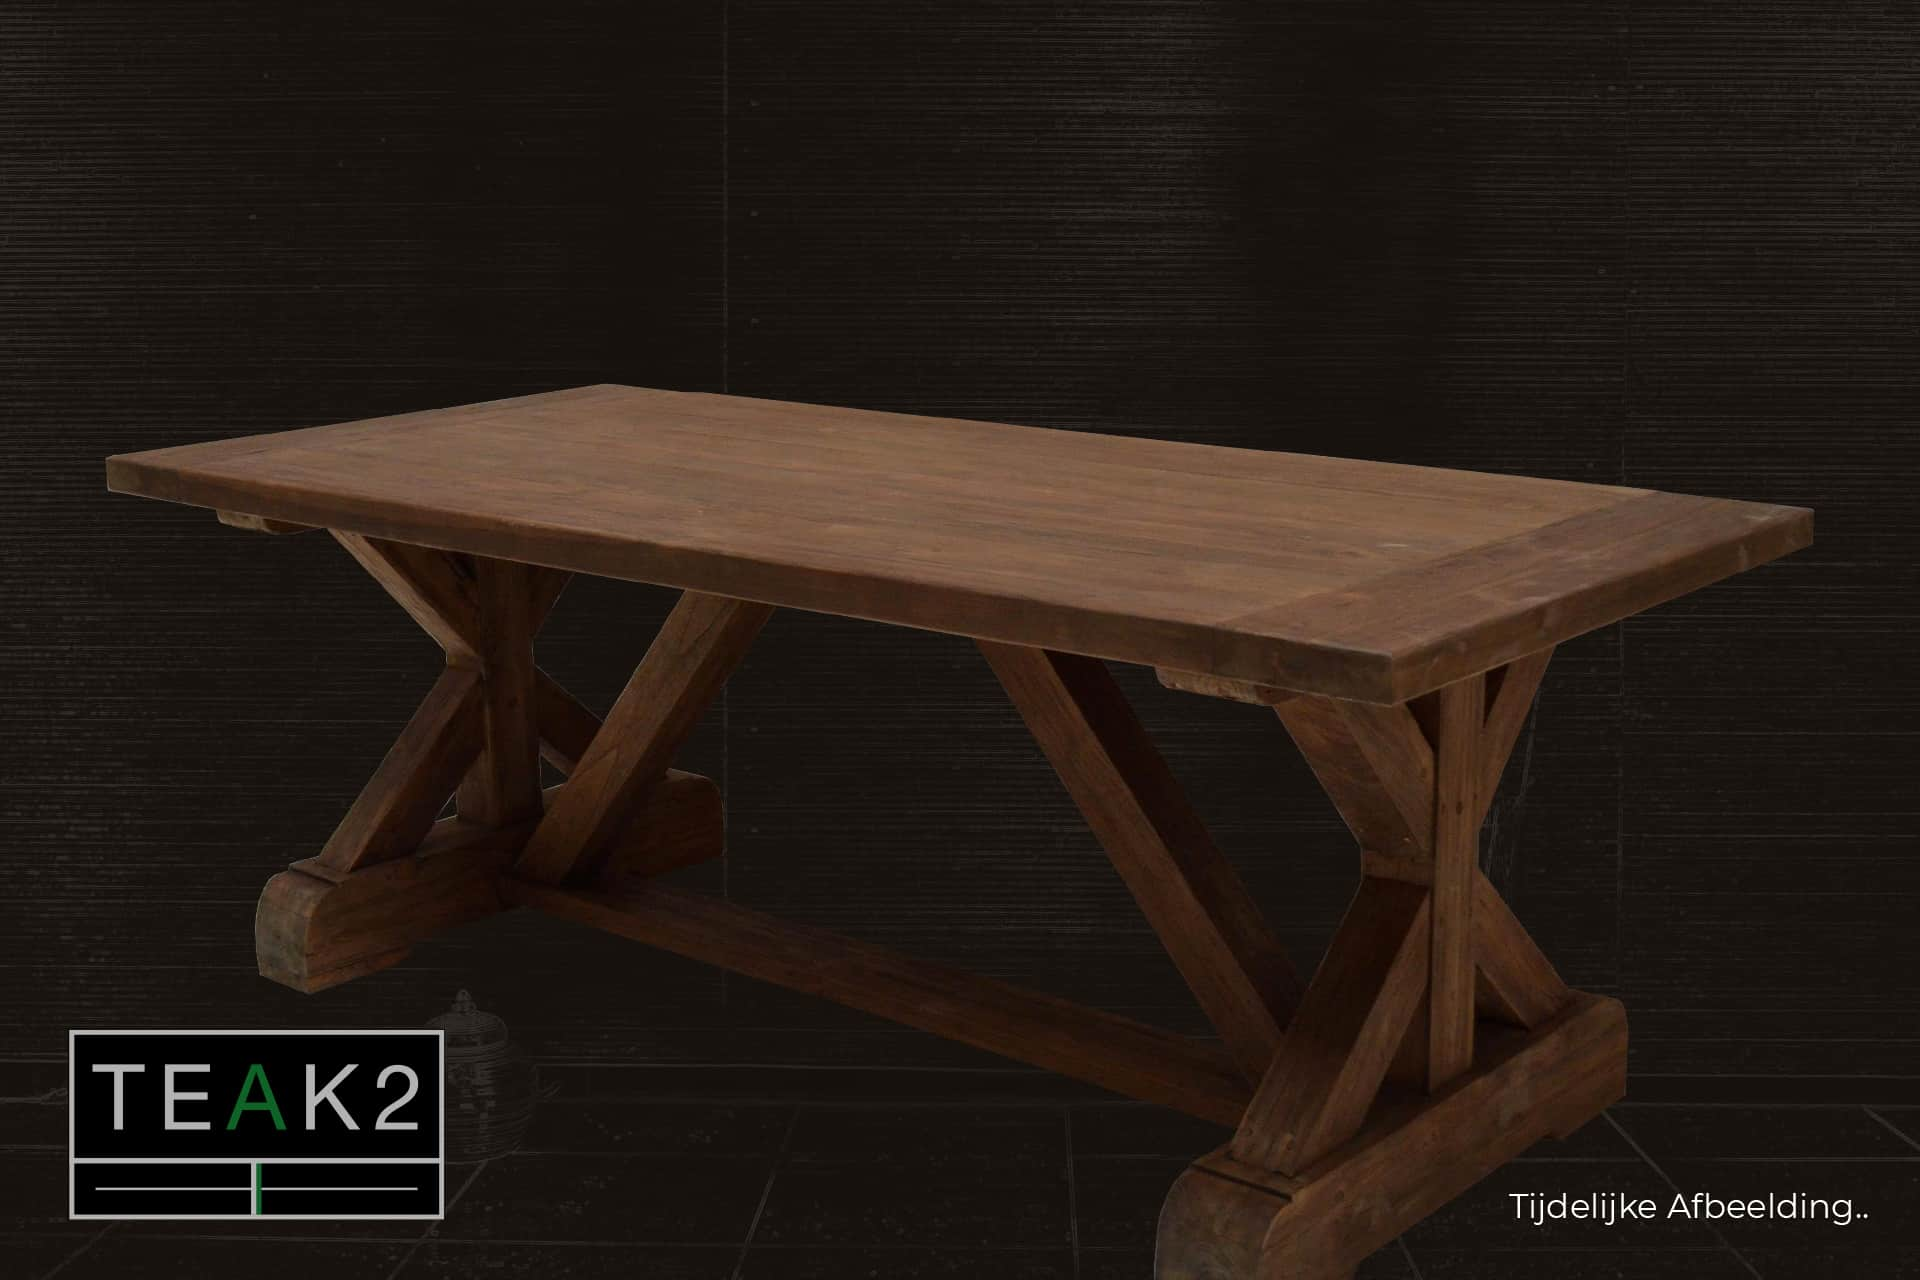 Teak Rahib Palang T220KL Old | luxury old wooden dining table teak in rural style, thick solid old teak table. Monastery table, kitchen table - TEAK2.